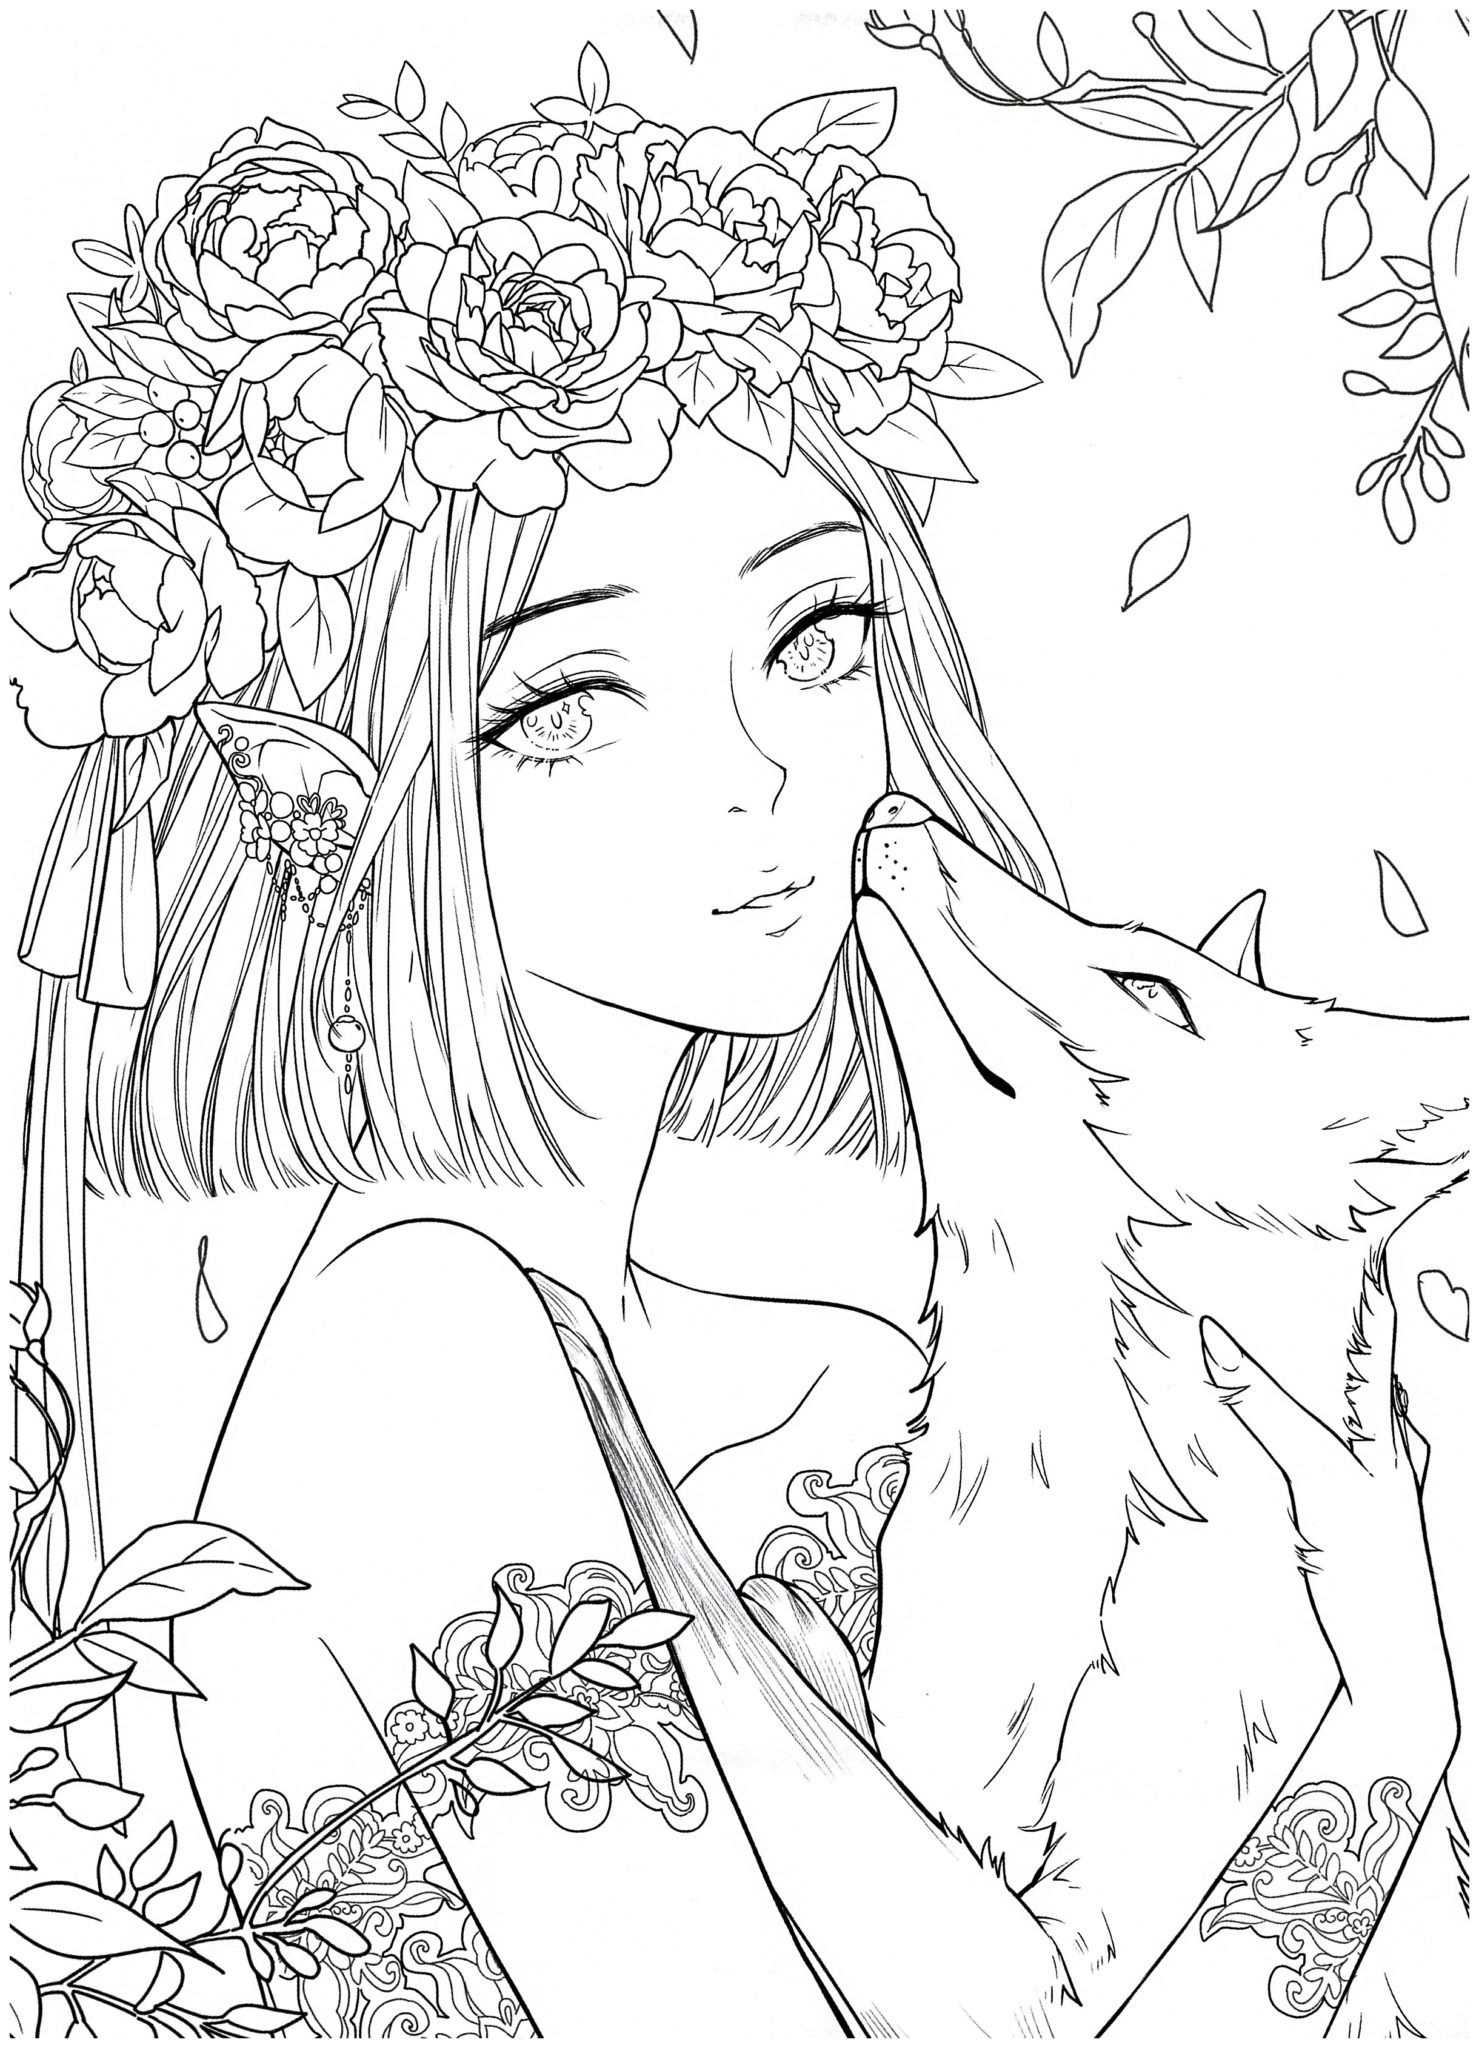 Chinese Portrait Coloring Ebook Vol 13 Floral Wedding Kayliebooks Coloring Book Art Coloring Books Cute Coloring Pages